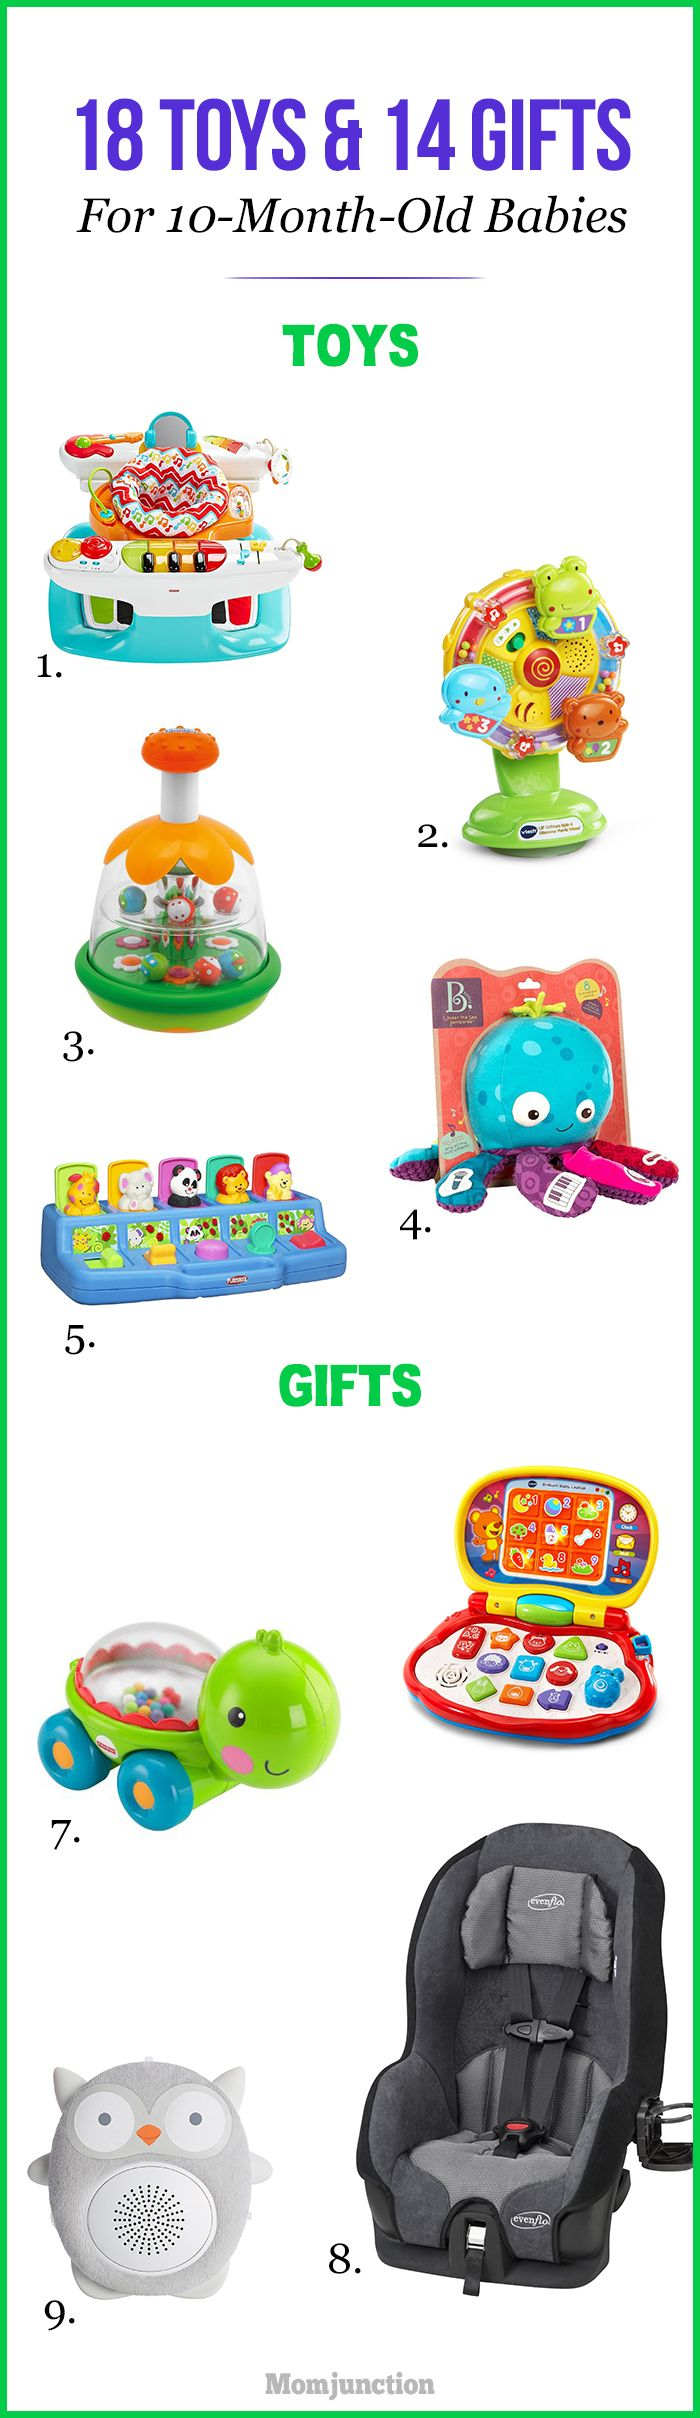 32 Best Toys And Gifts For 10-Month-Old Babies To Buy In ...